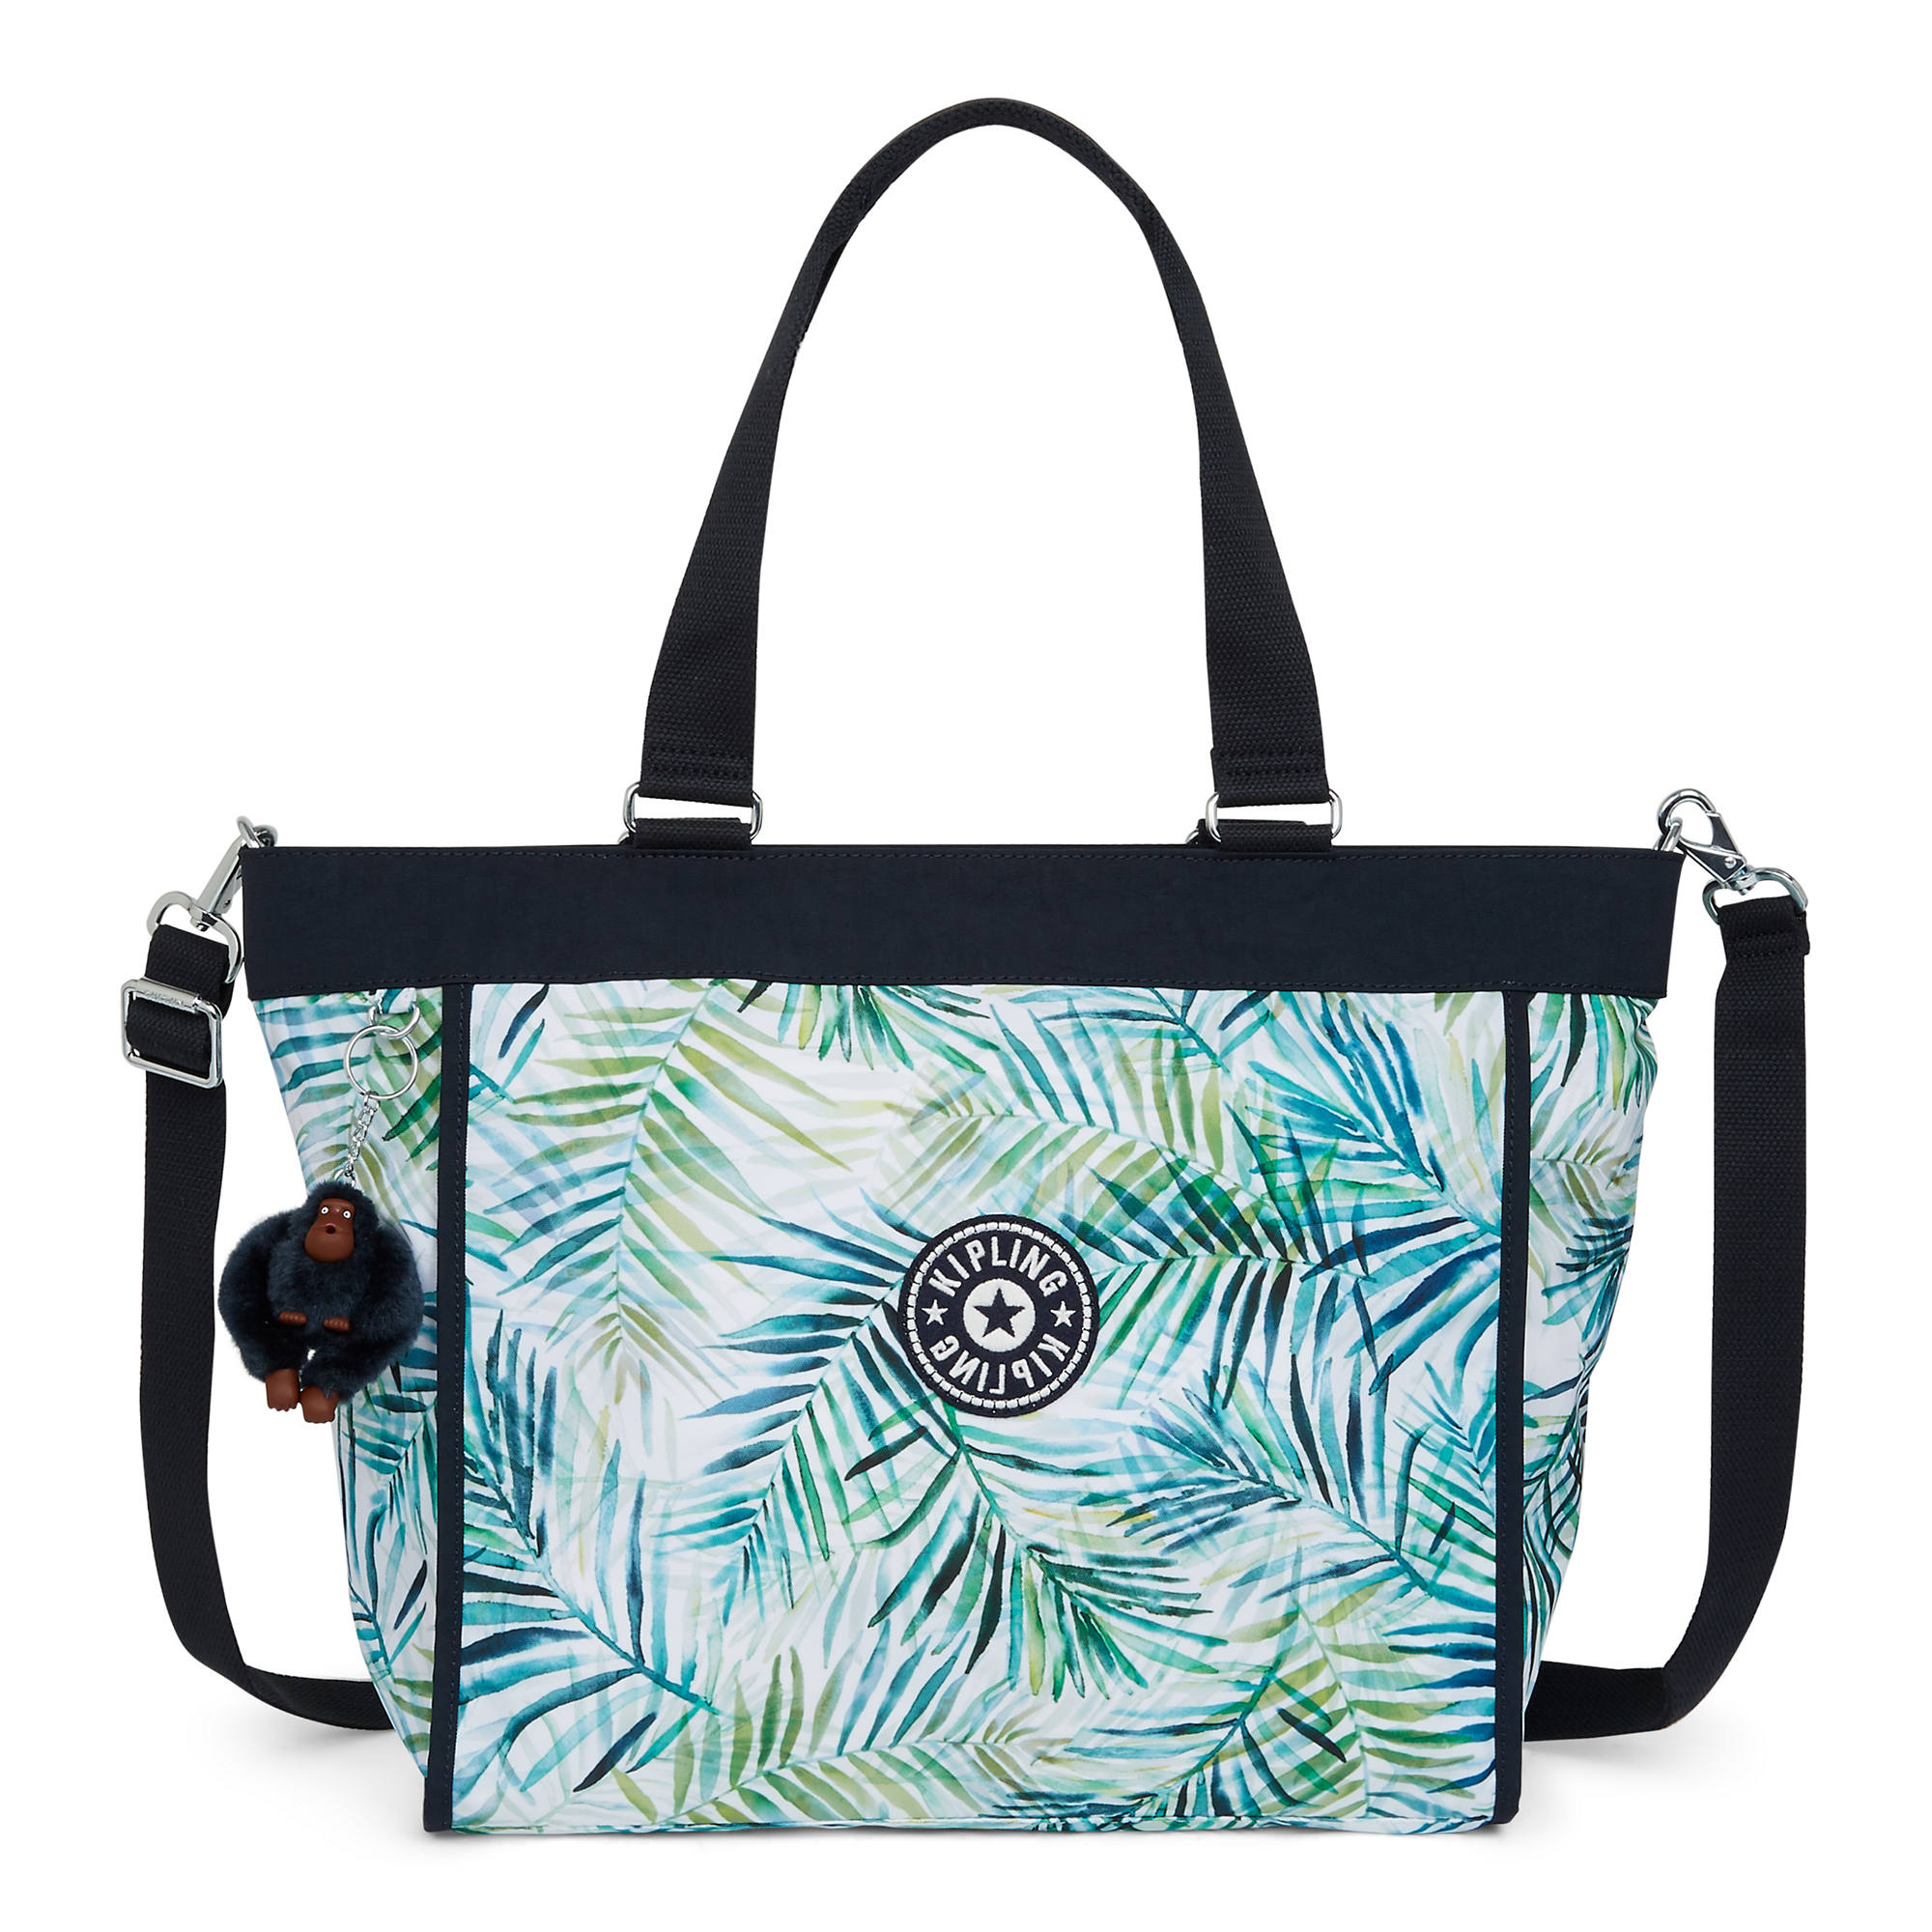 5ebbd9e078 New Shopper Large Tote Bag,Lively Meadows,large